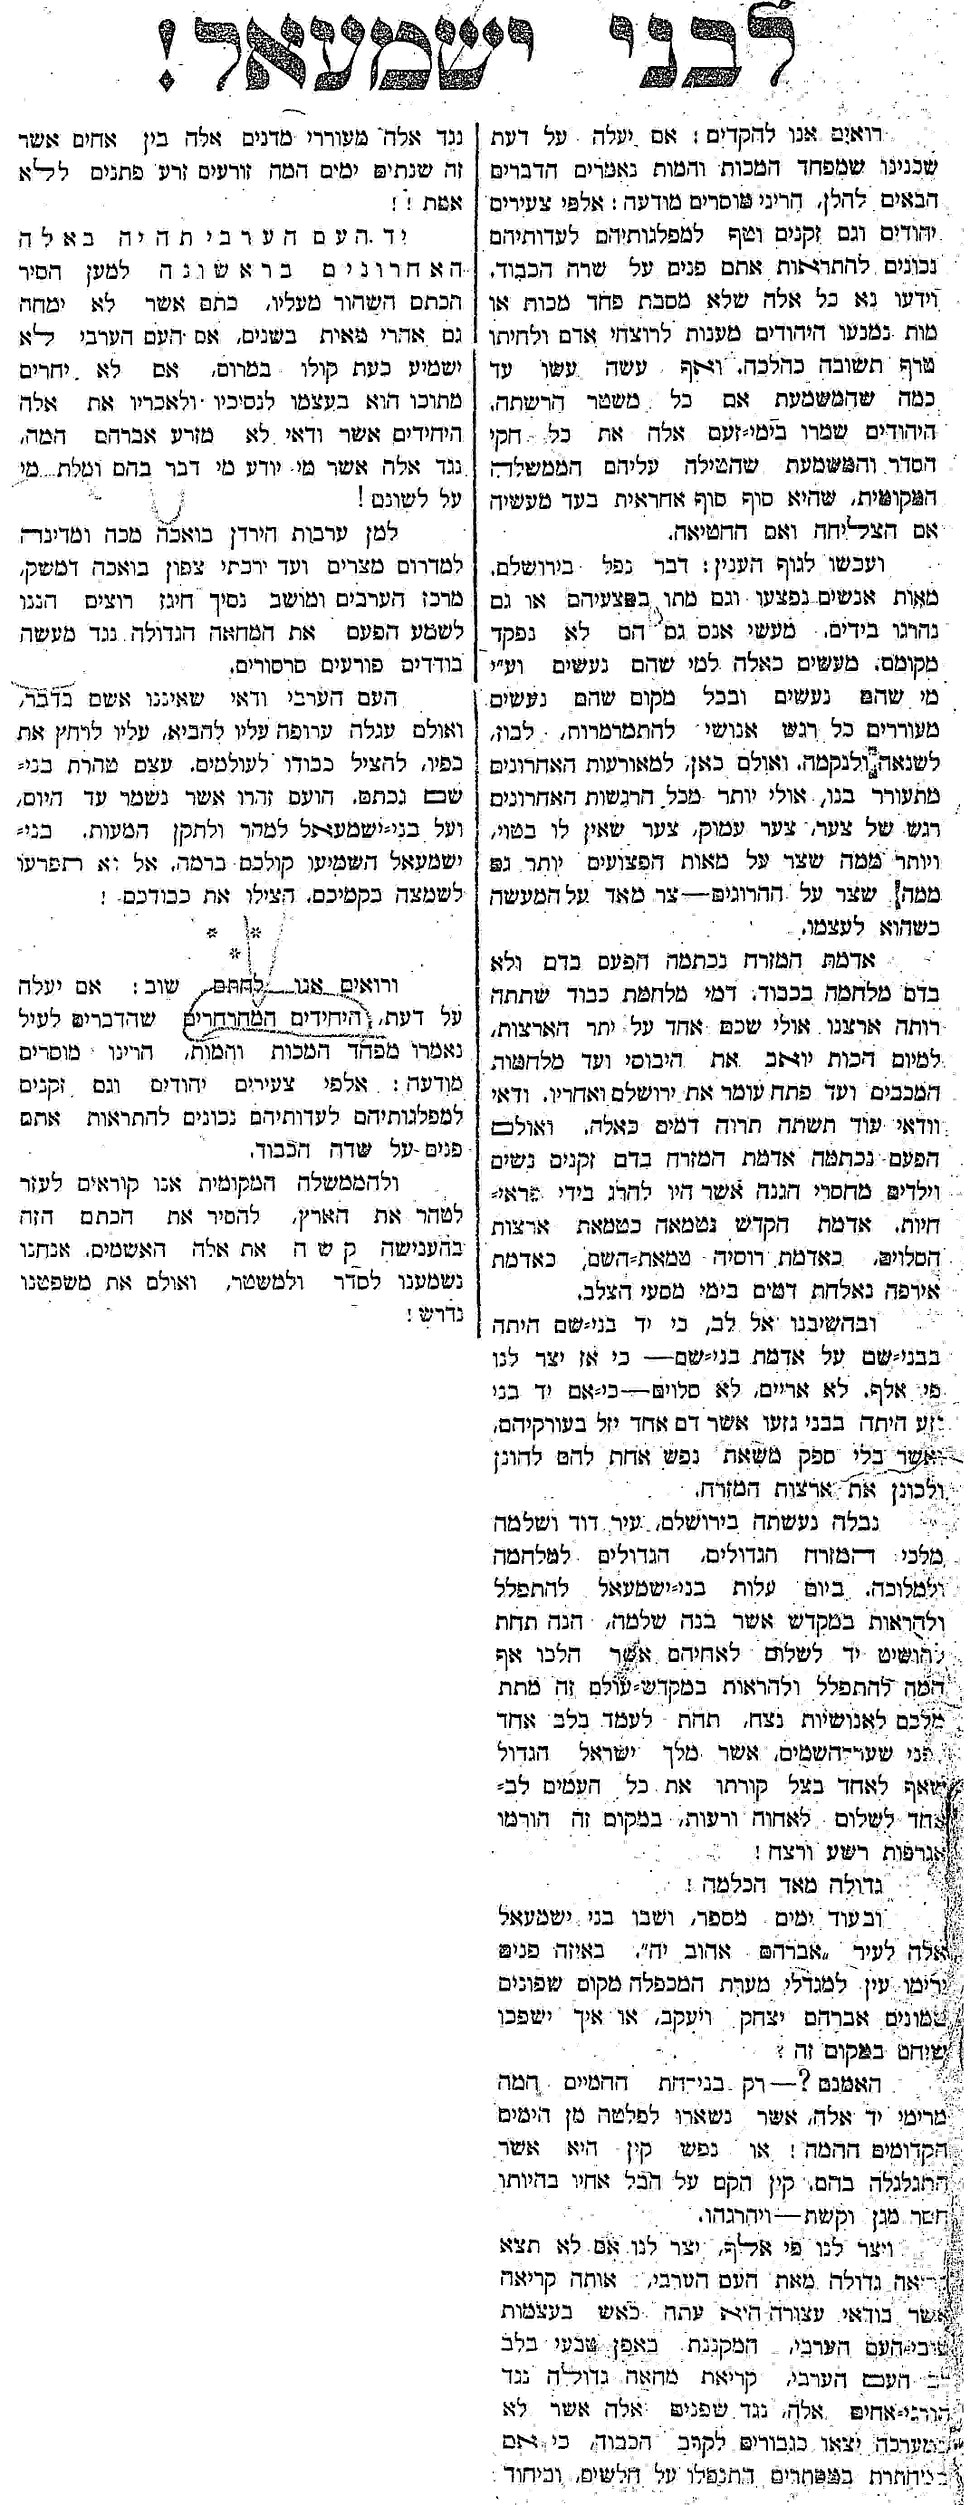 Letter for the Sons of Ishmael